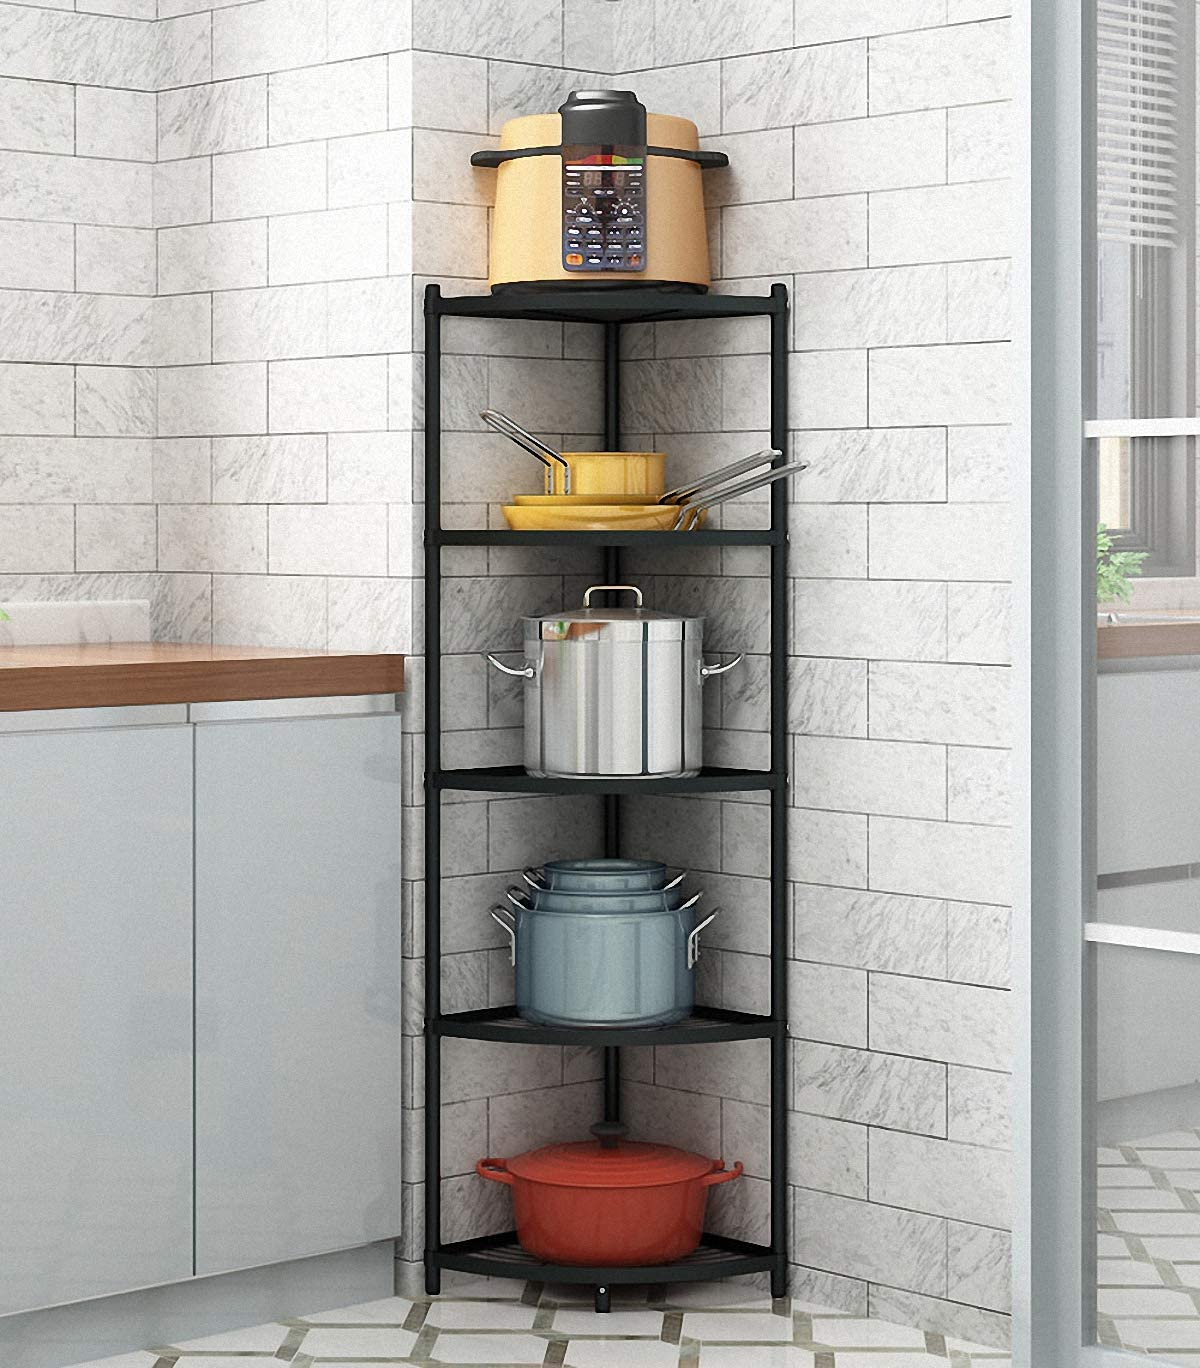 Super beauty product restock quality top 5-Tier Kitchen Corner Shelf Rack online shopping for Org Pot Free Standing